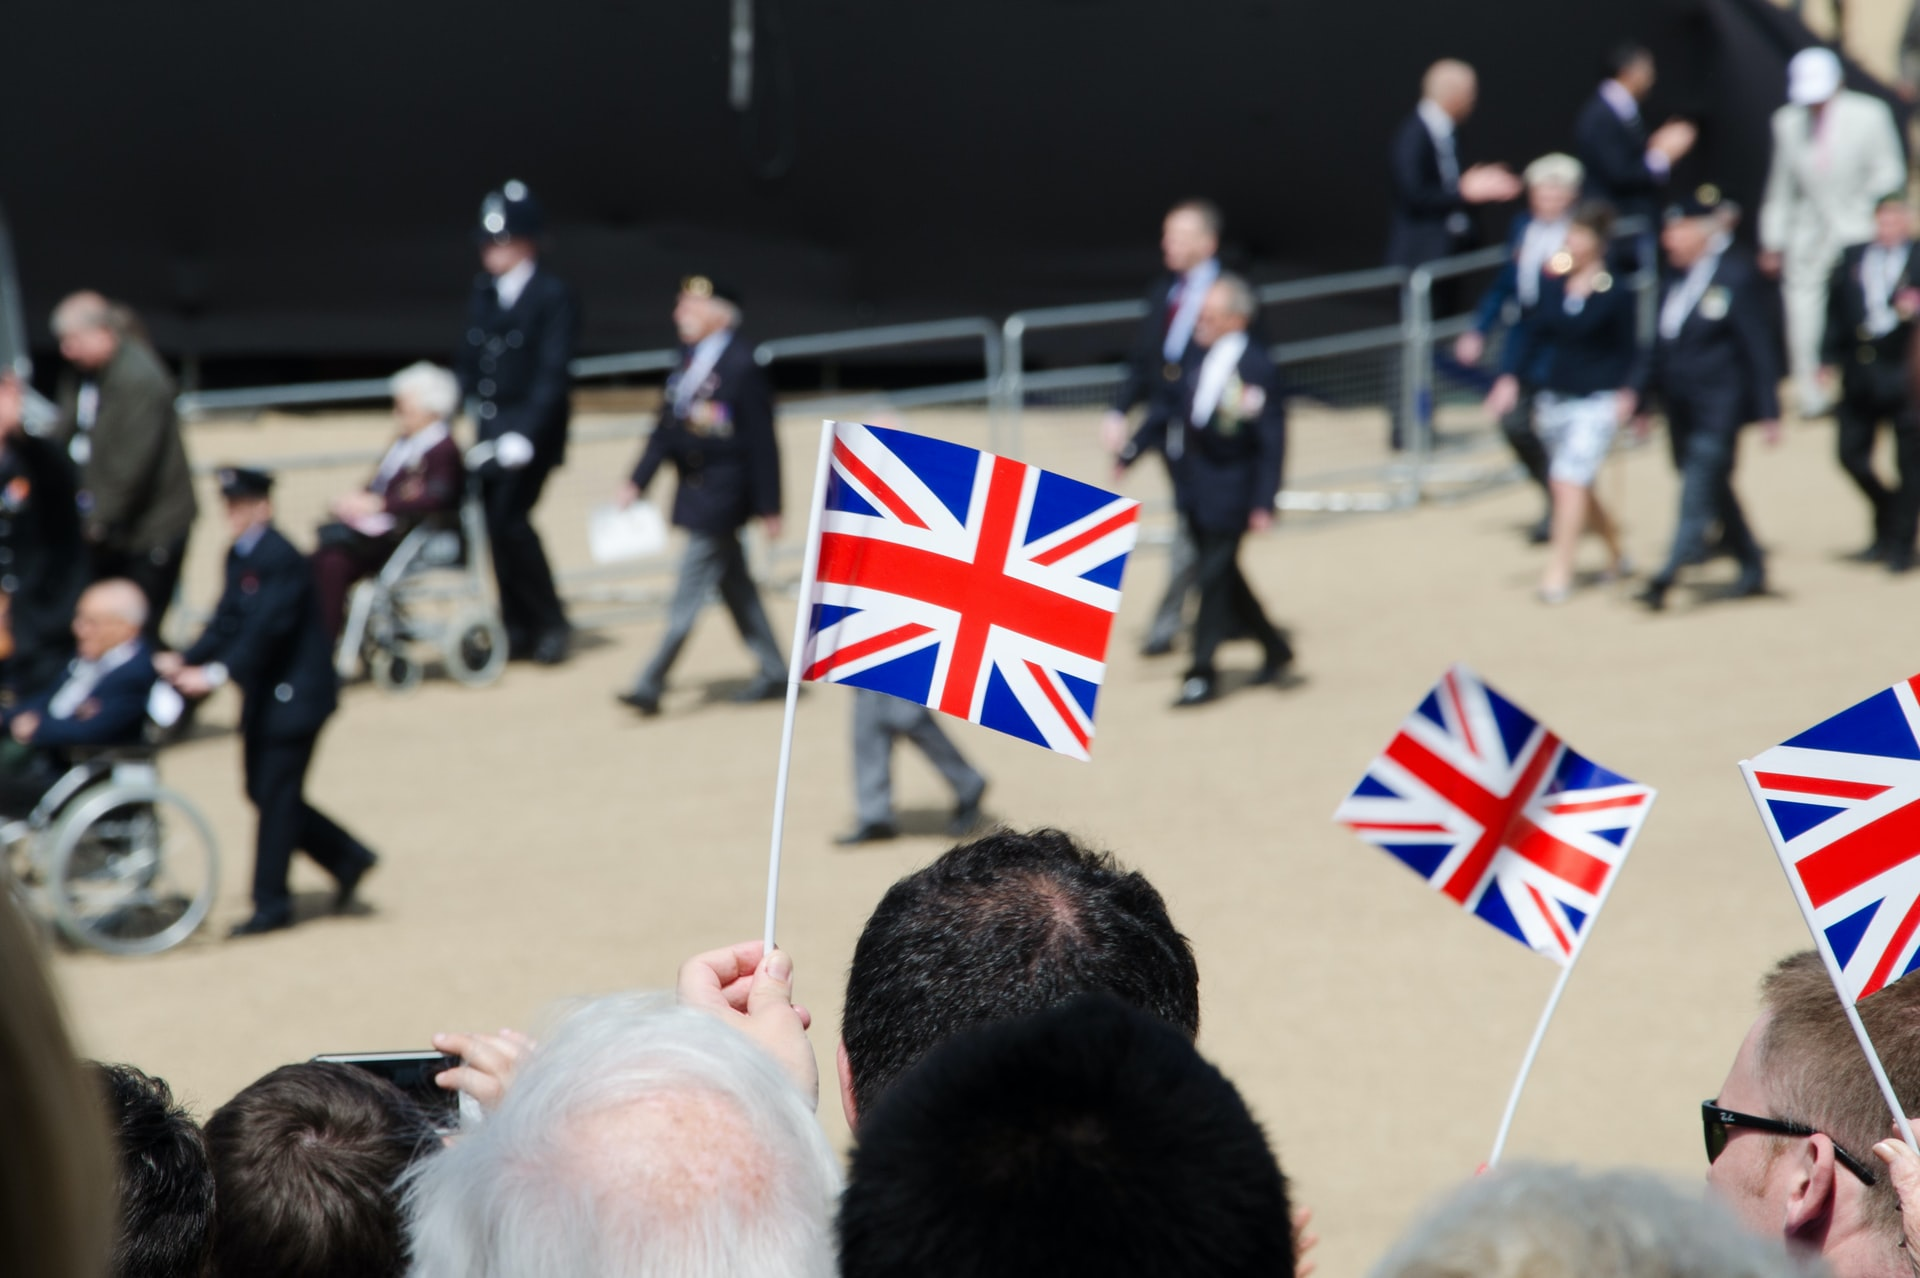 Share your pictures and videos in support this Armed Forces Day